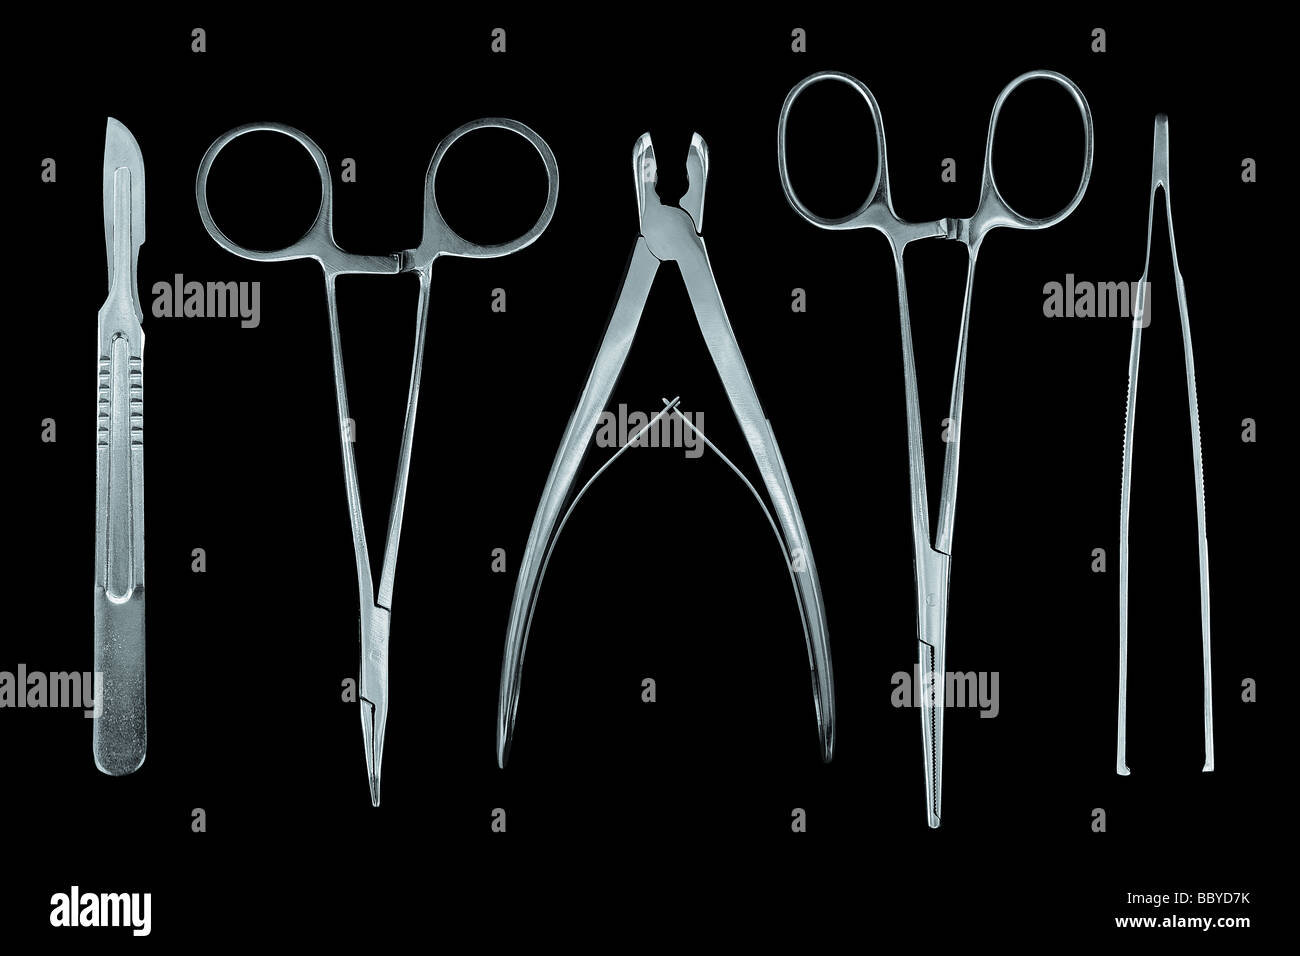 surgeon tools isolated on the black background - Stock Image